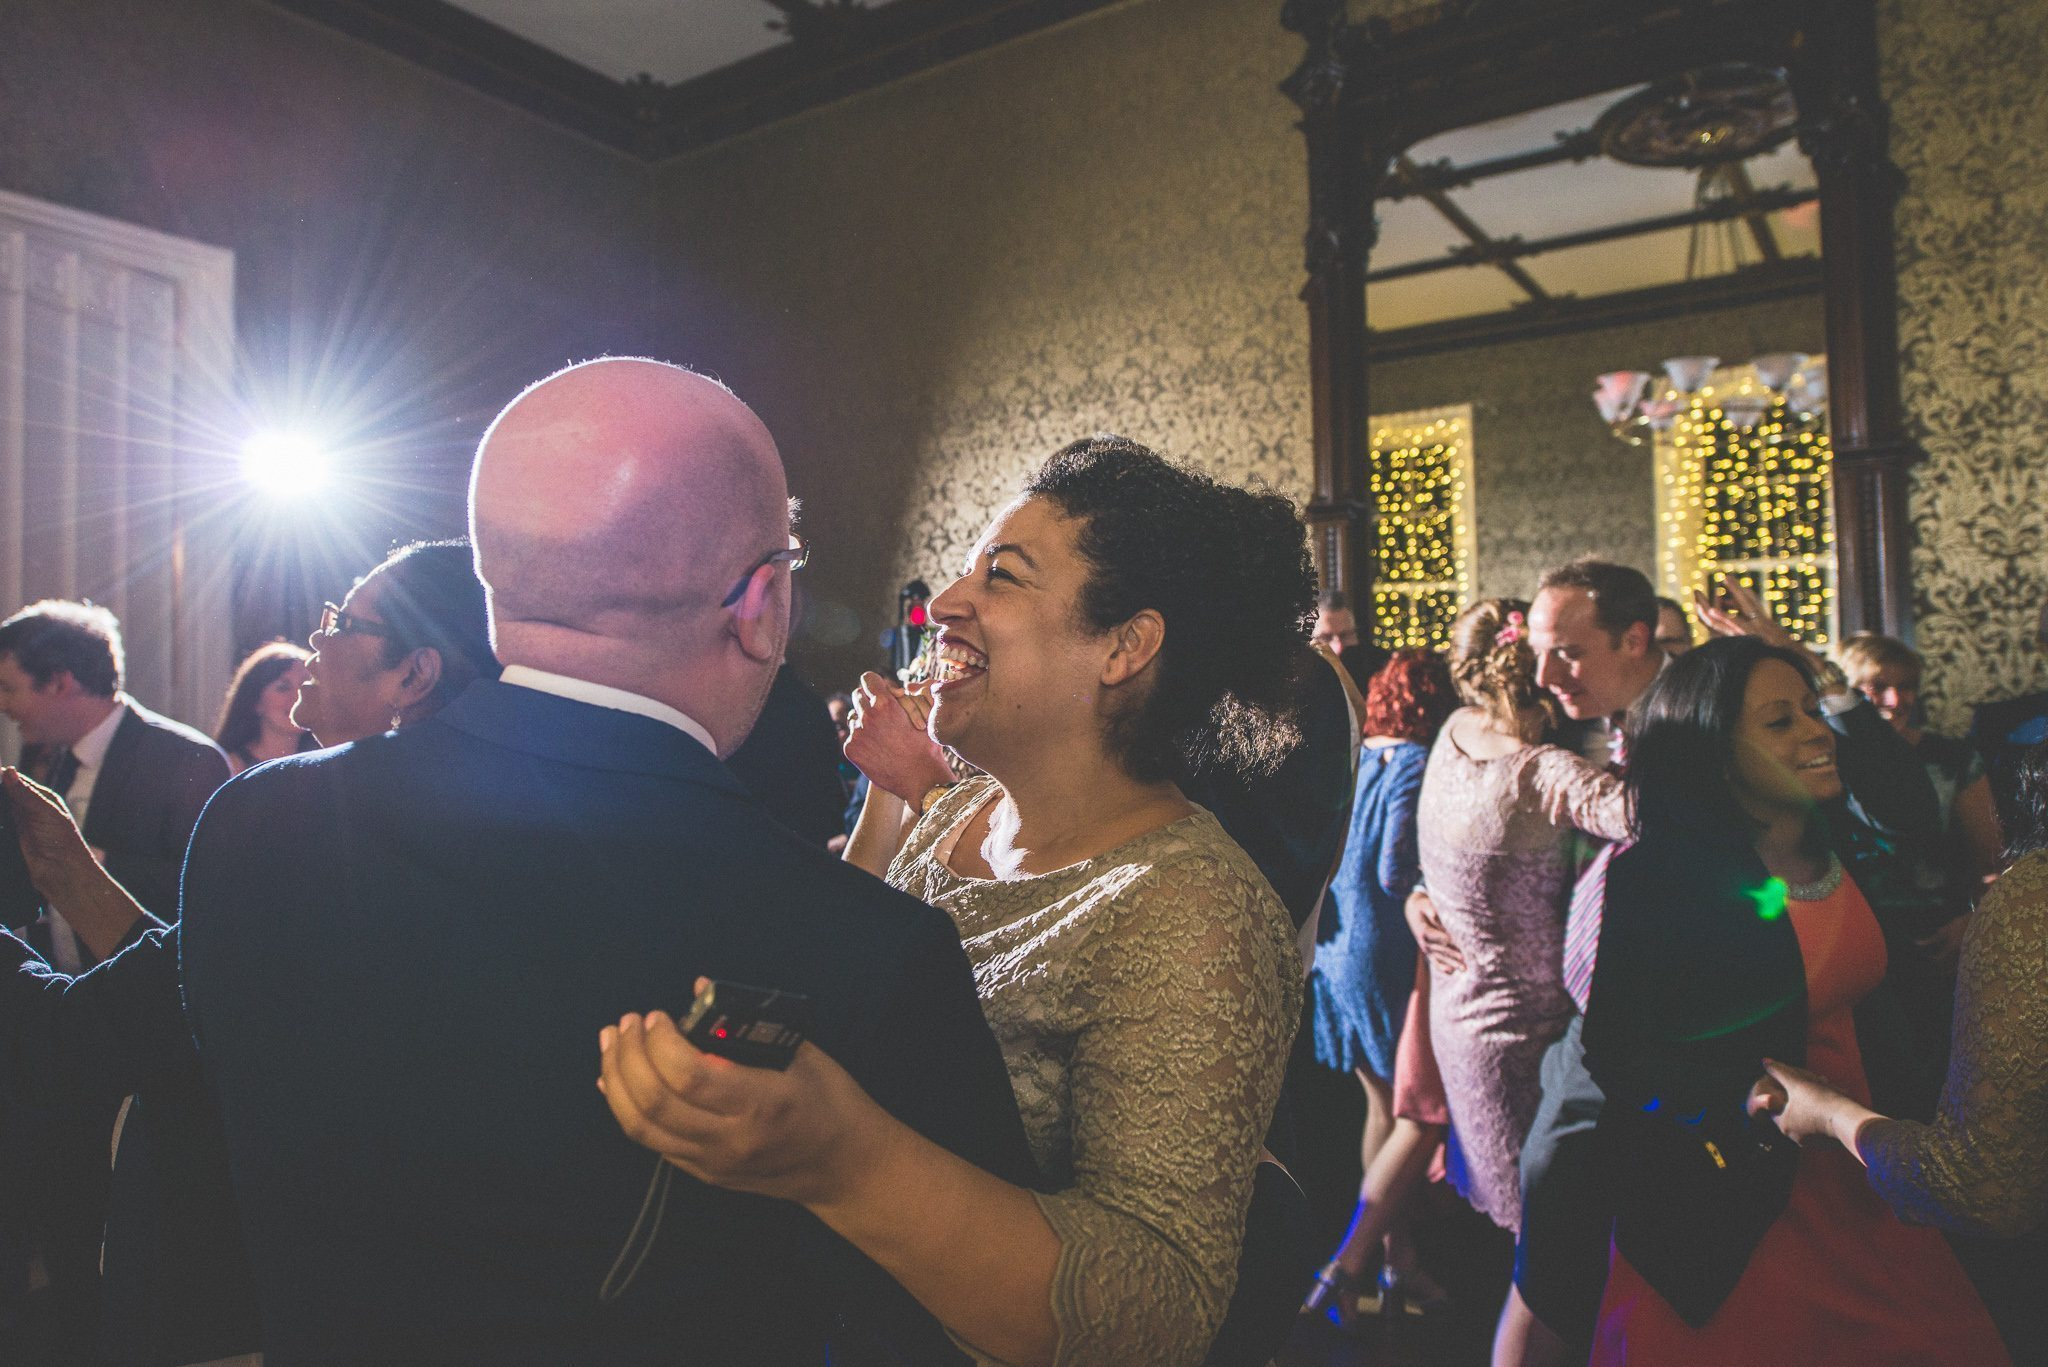 One of the bridesmaids dances with one of the groomsmen as the floor fills up